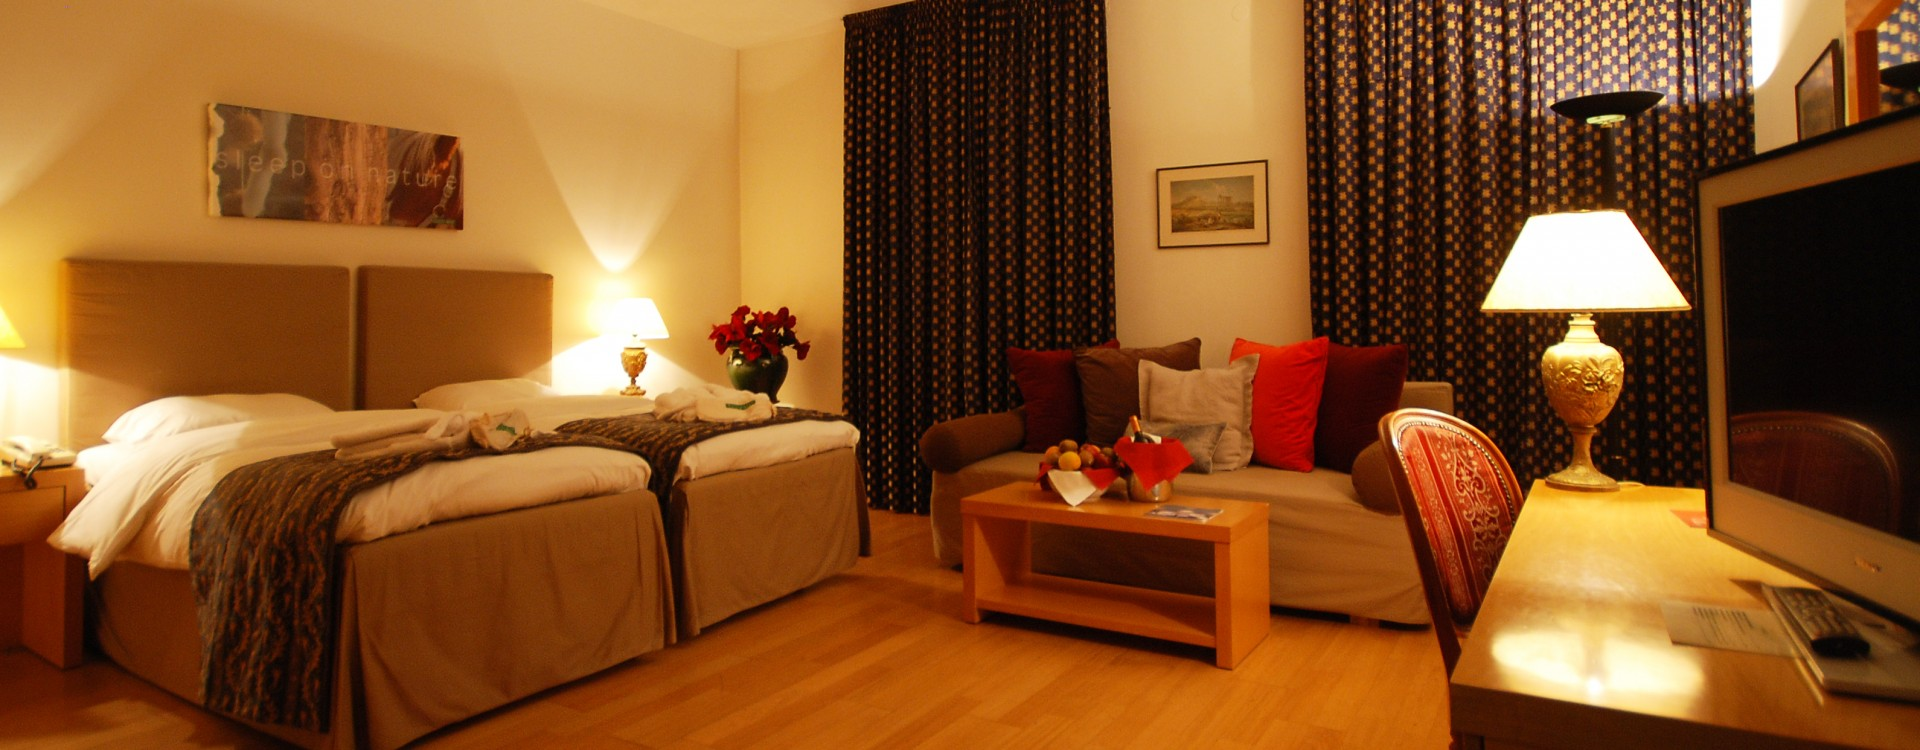 Feel comfortable in our rooms